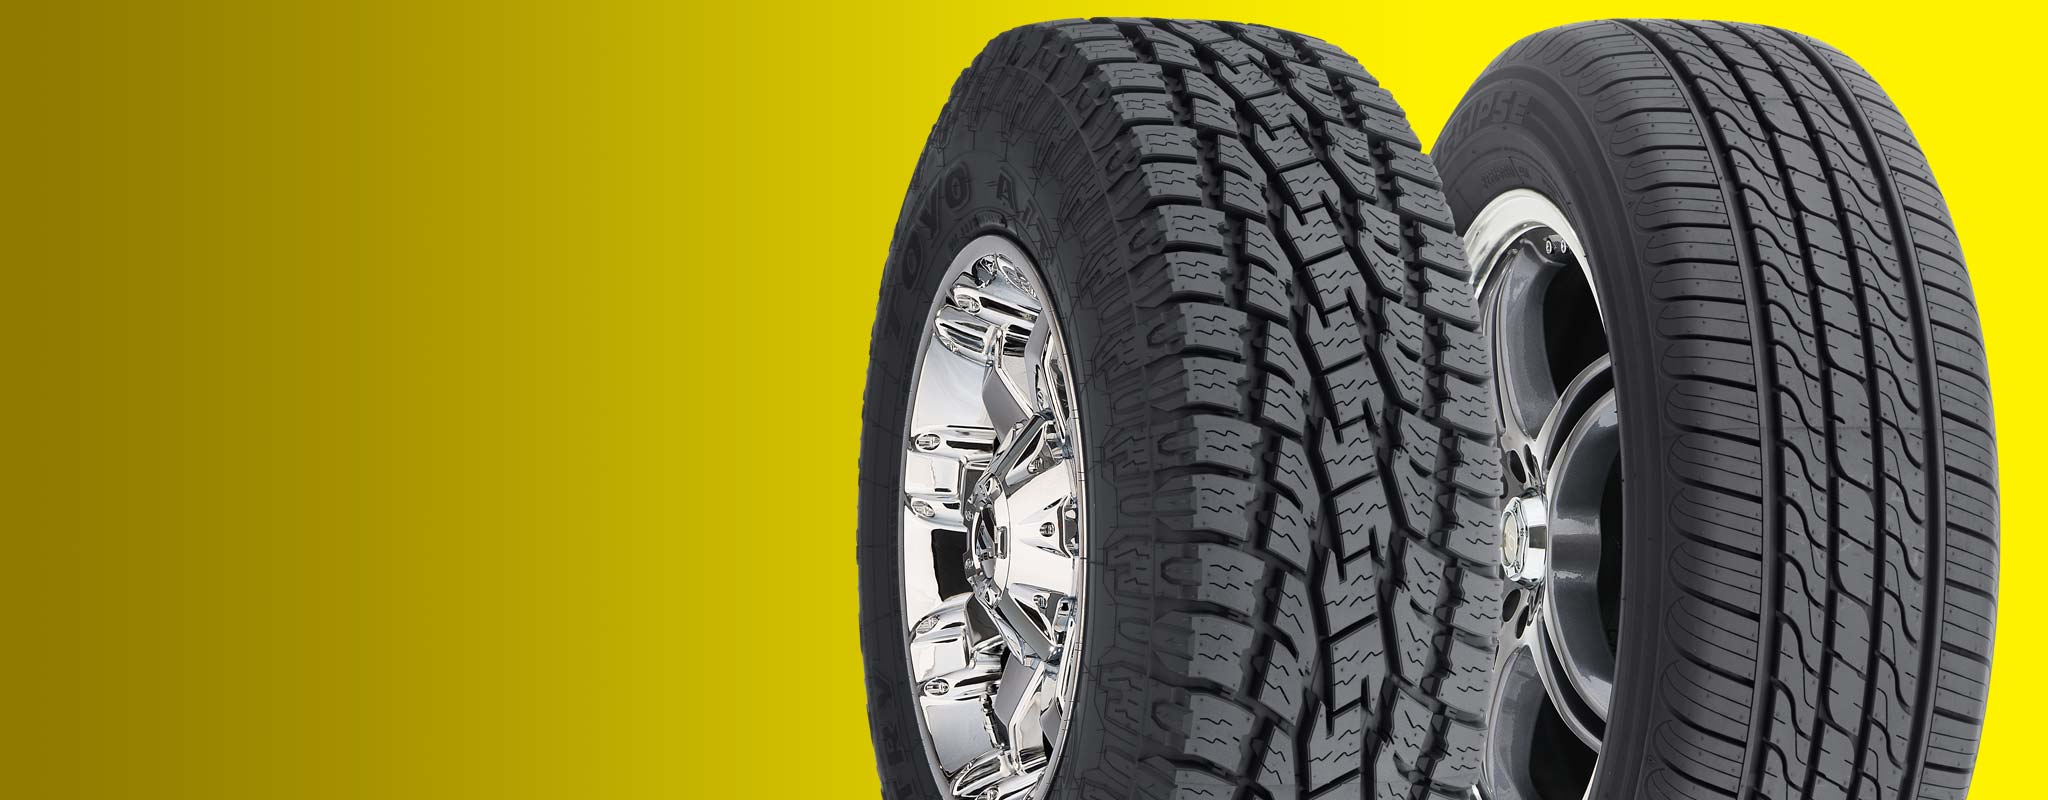 Tires on white background